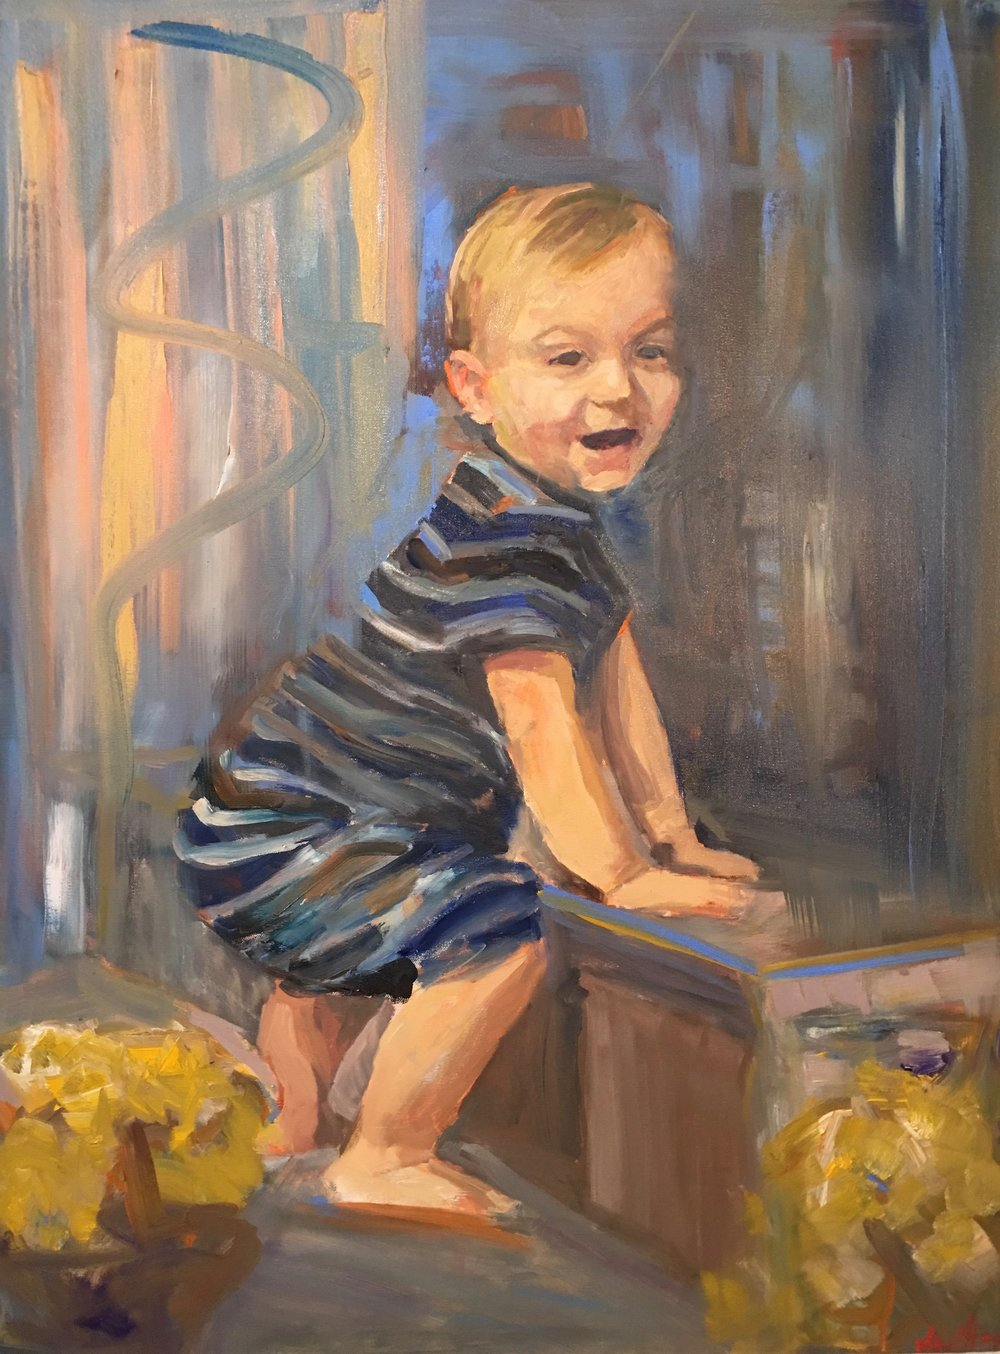 Fitzy, Oil on canvas, 40 x 30